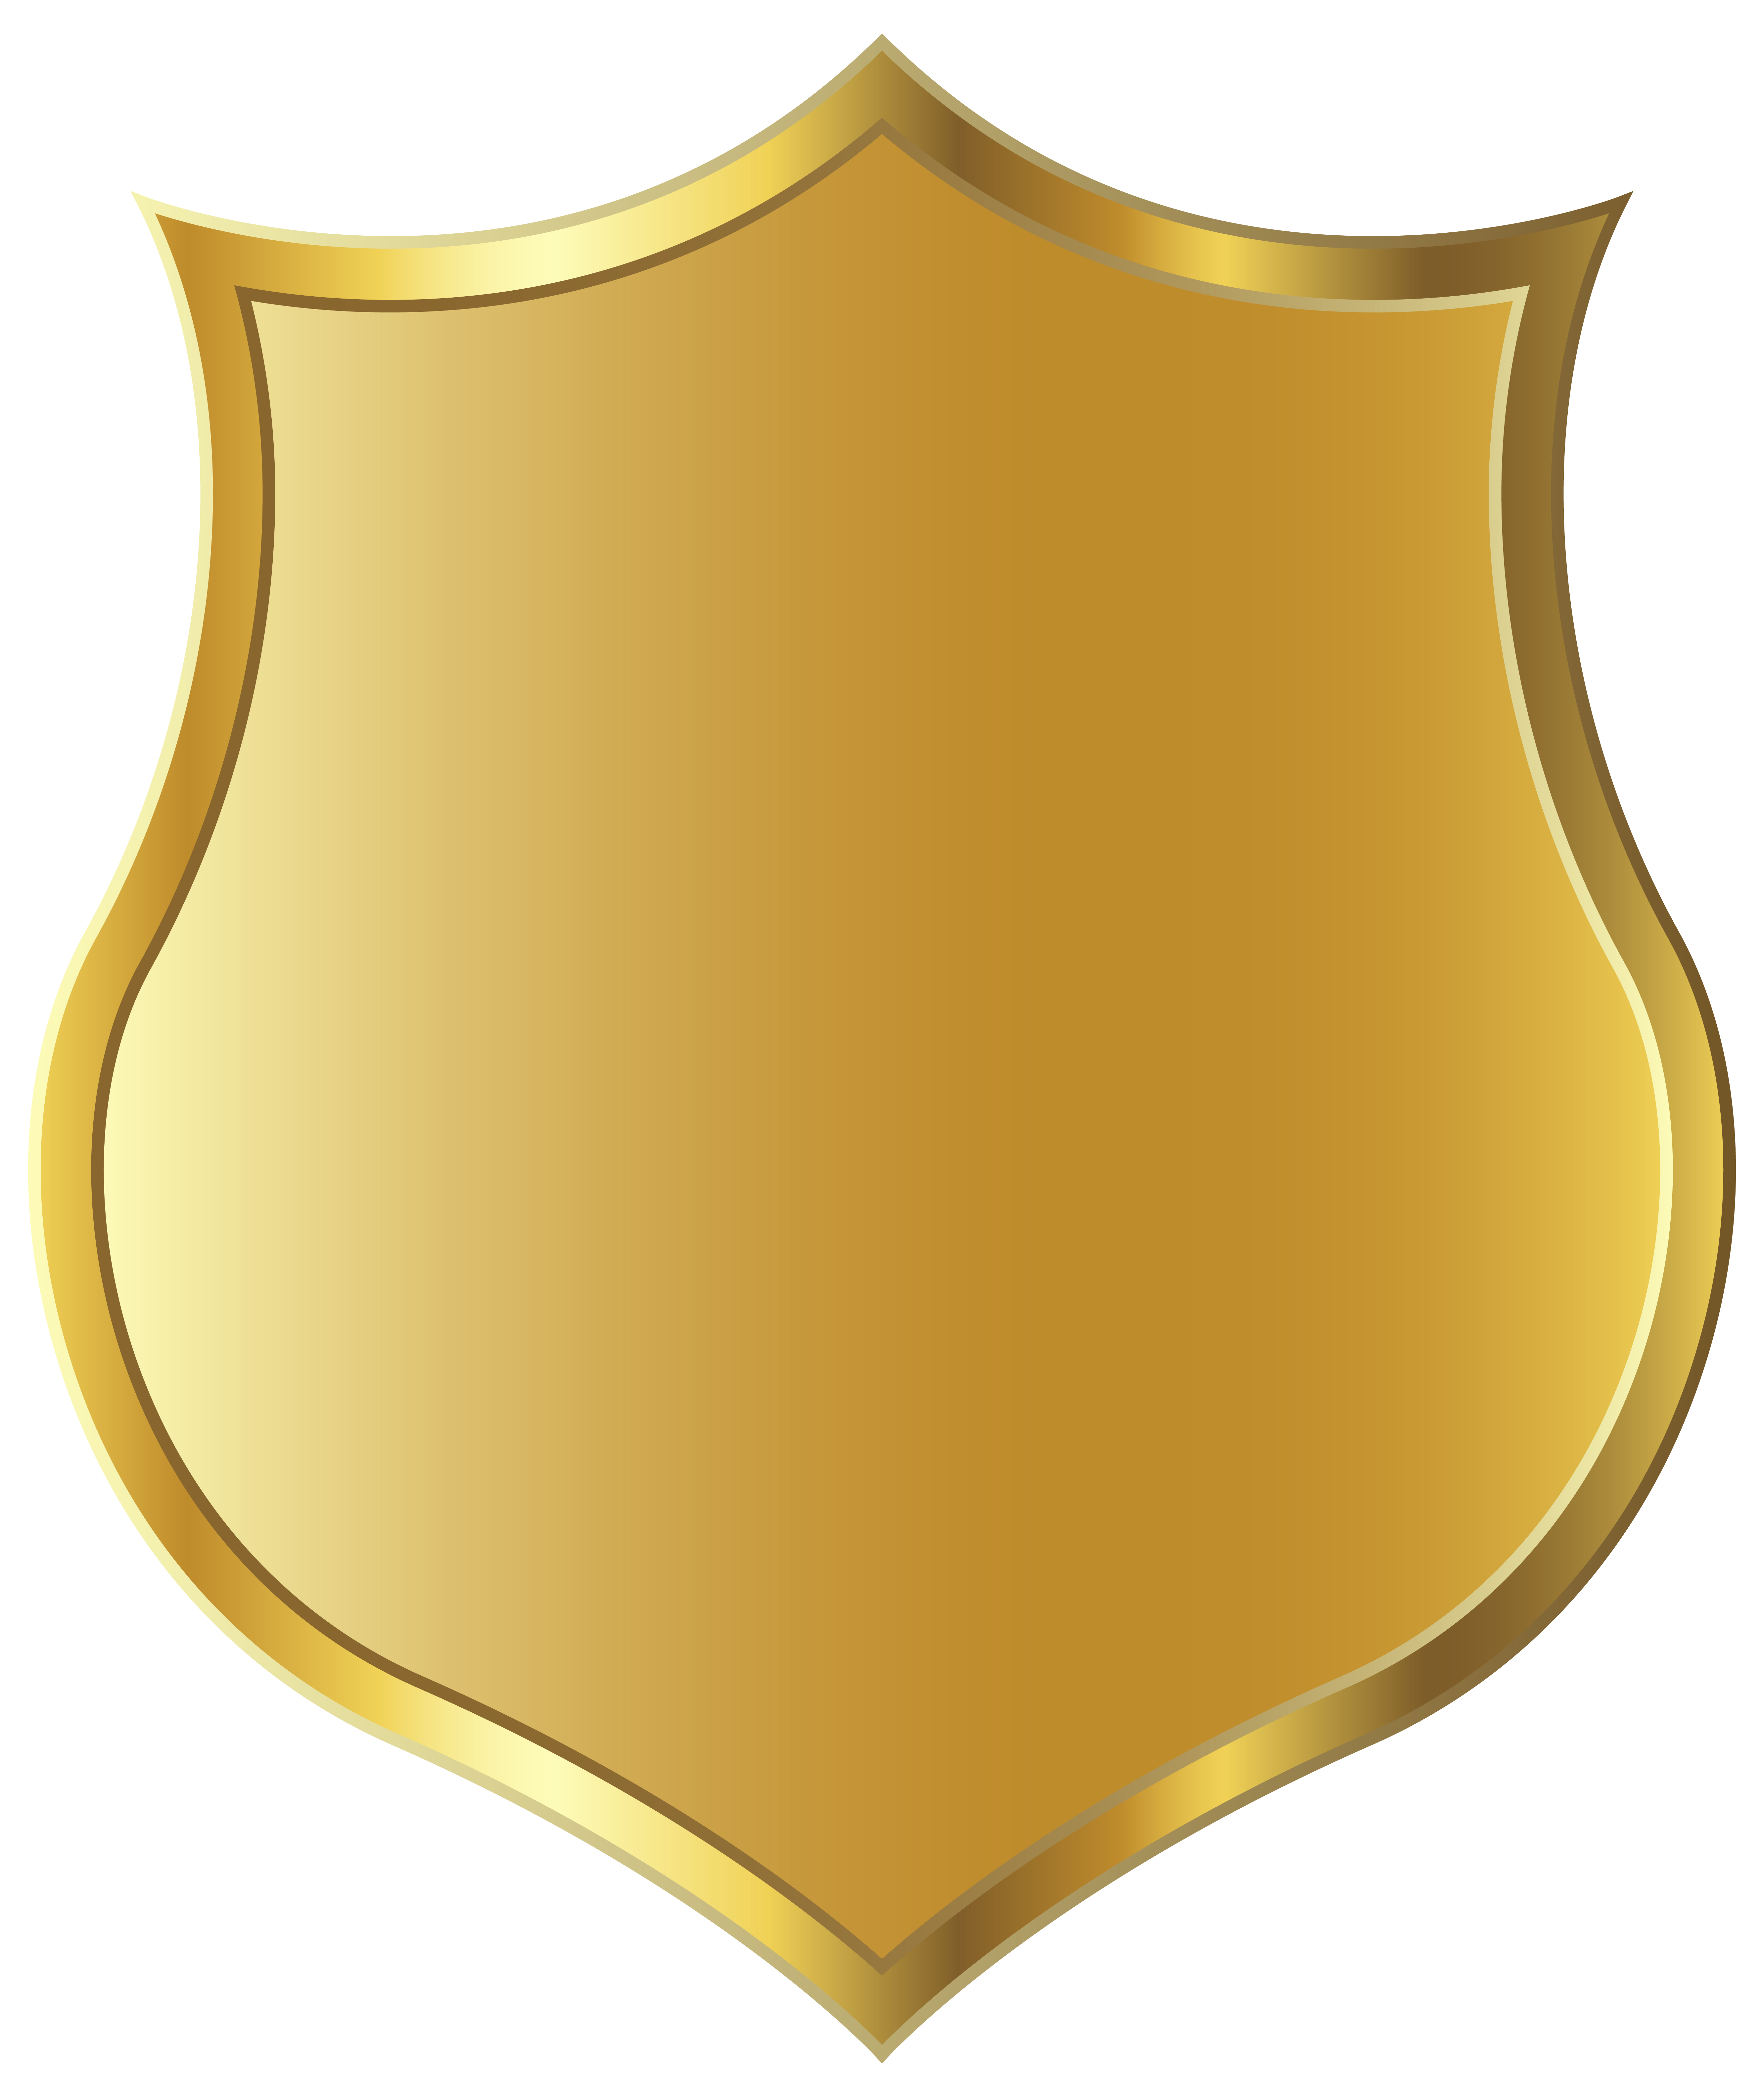 Gold Badge Template Png Image Gallery Yopriceville High Quality Images And Transparent Png Free Clipart Badge Template Png Images Badge